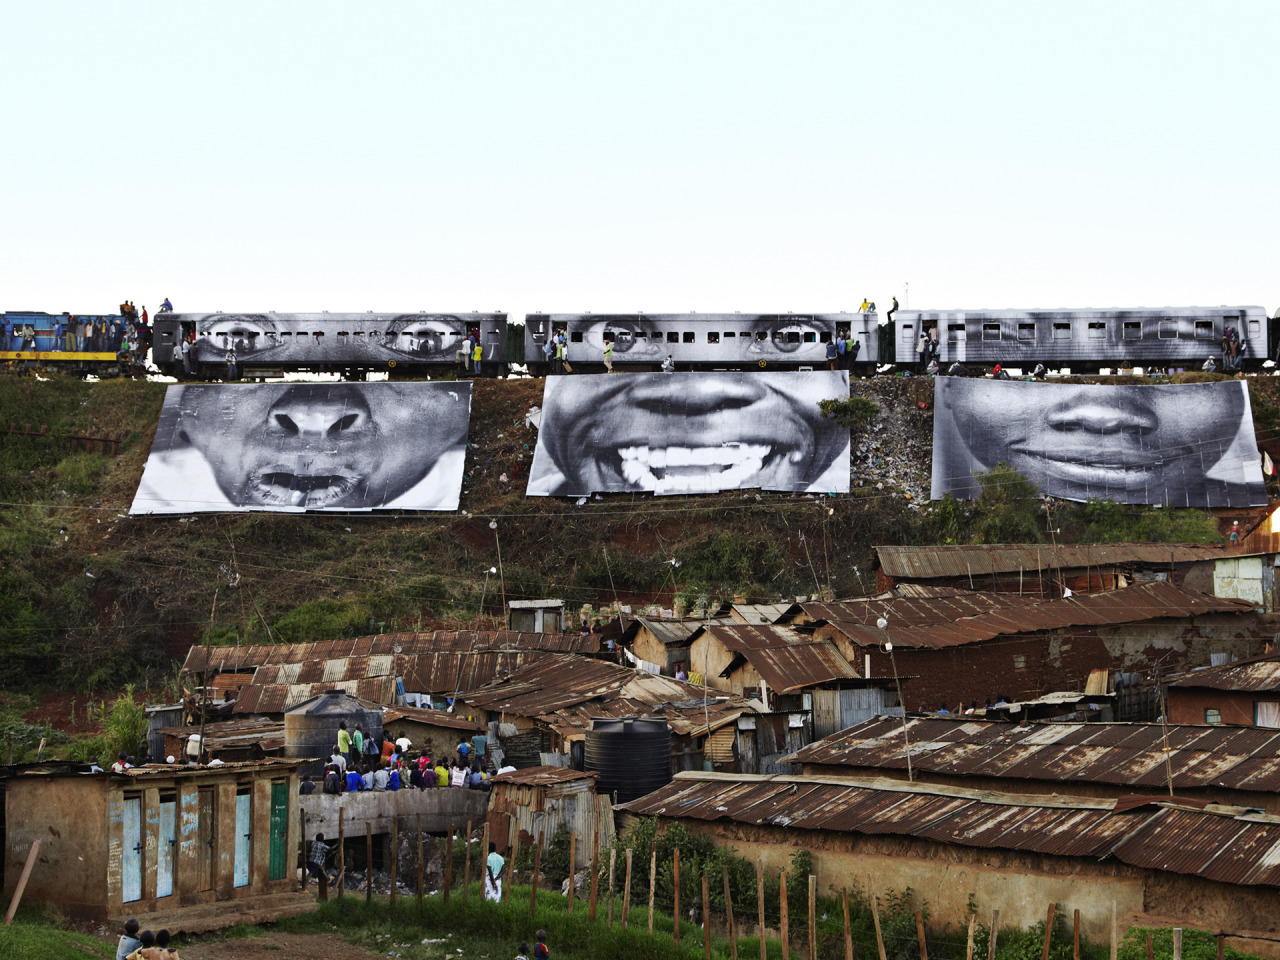 Artwork of the day: 28 Millimetres, Women are Heros - In Kibera Slum, train passage 1, 2010 by JR